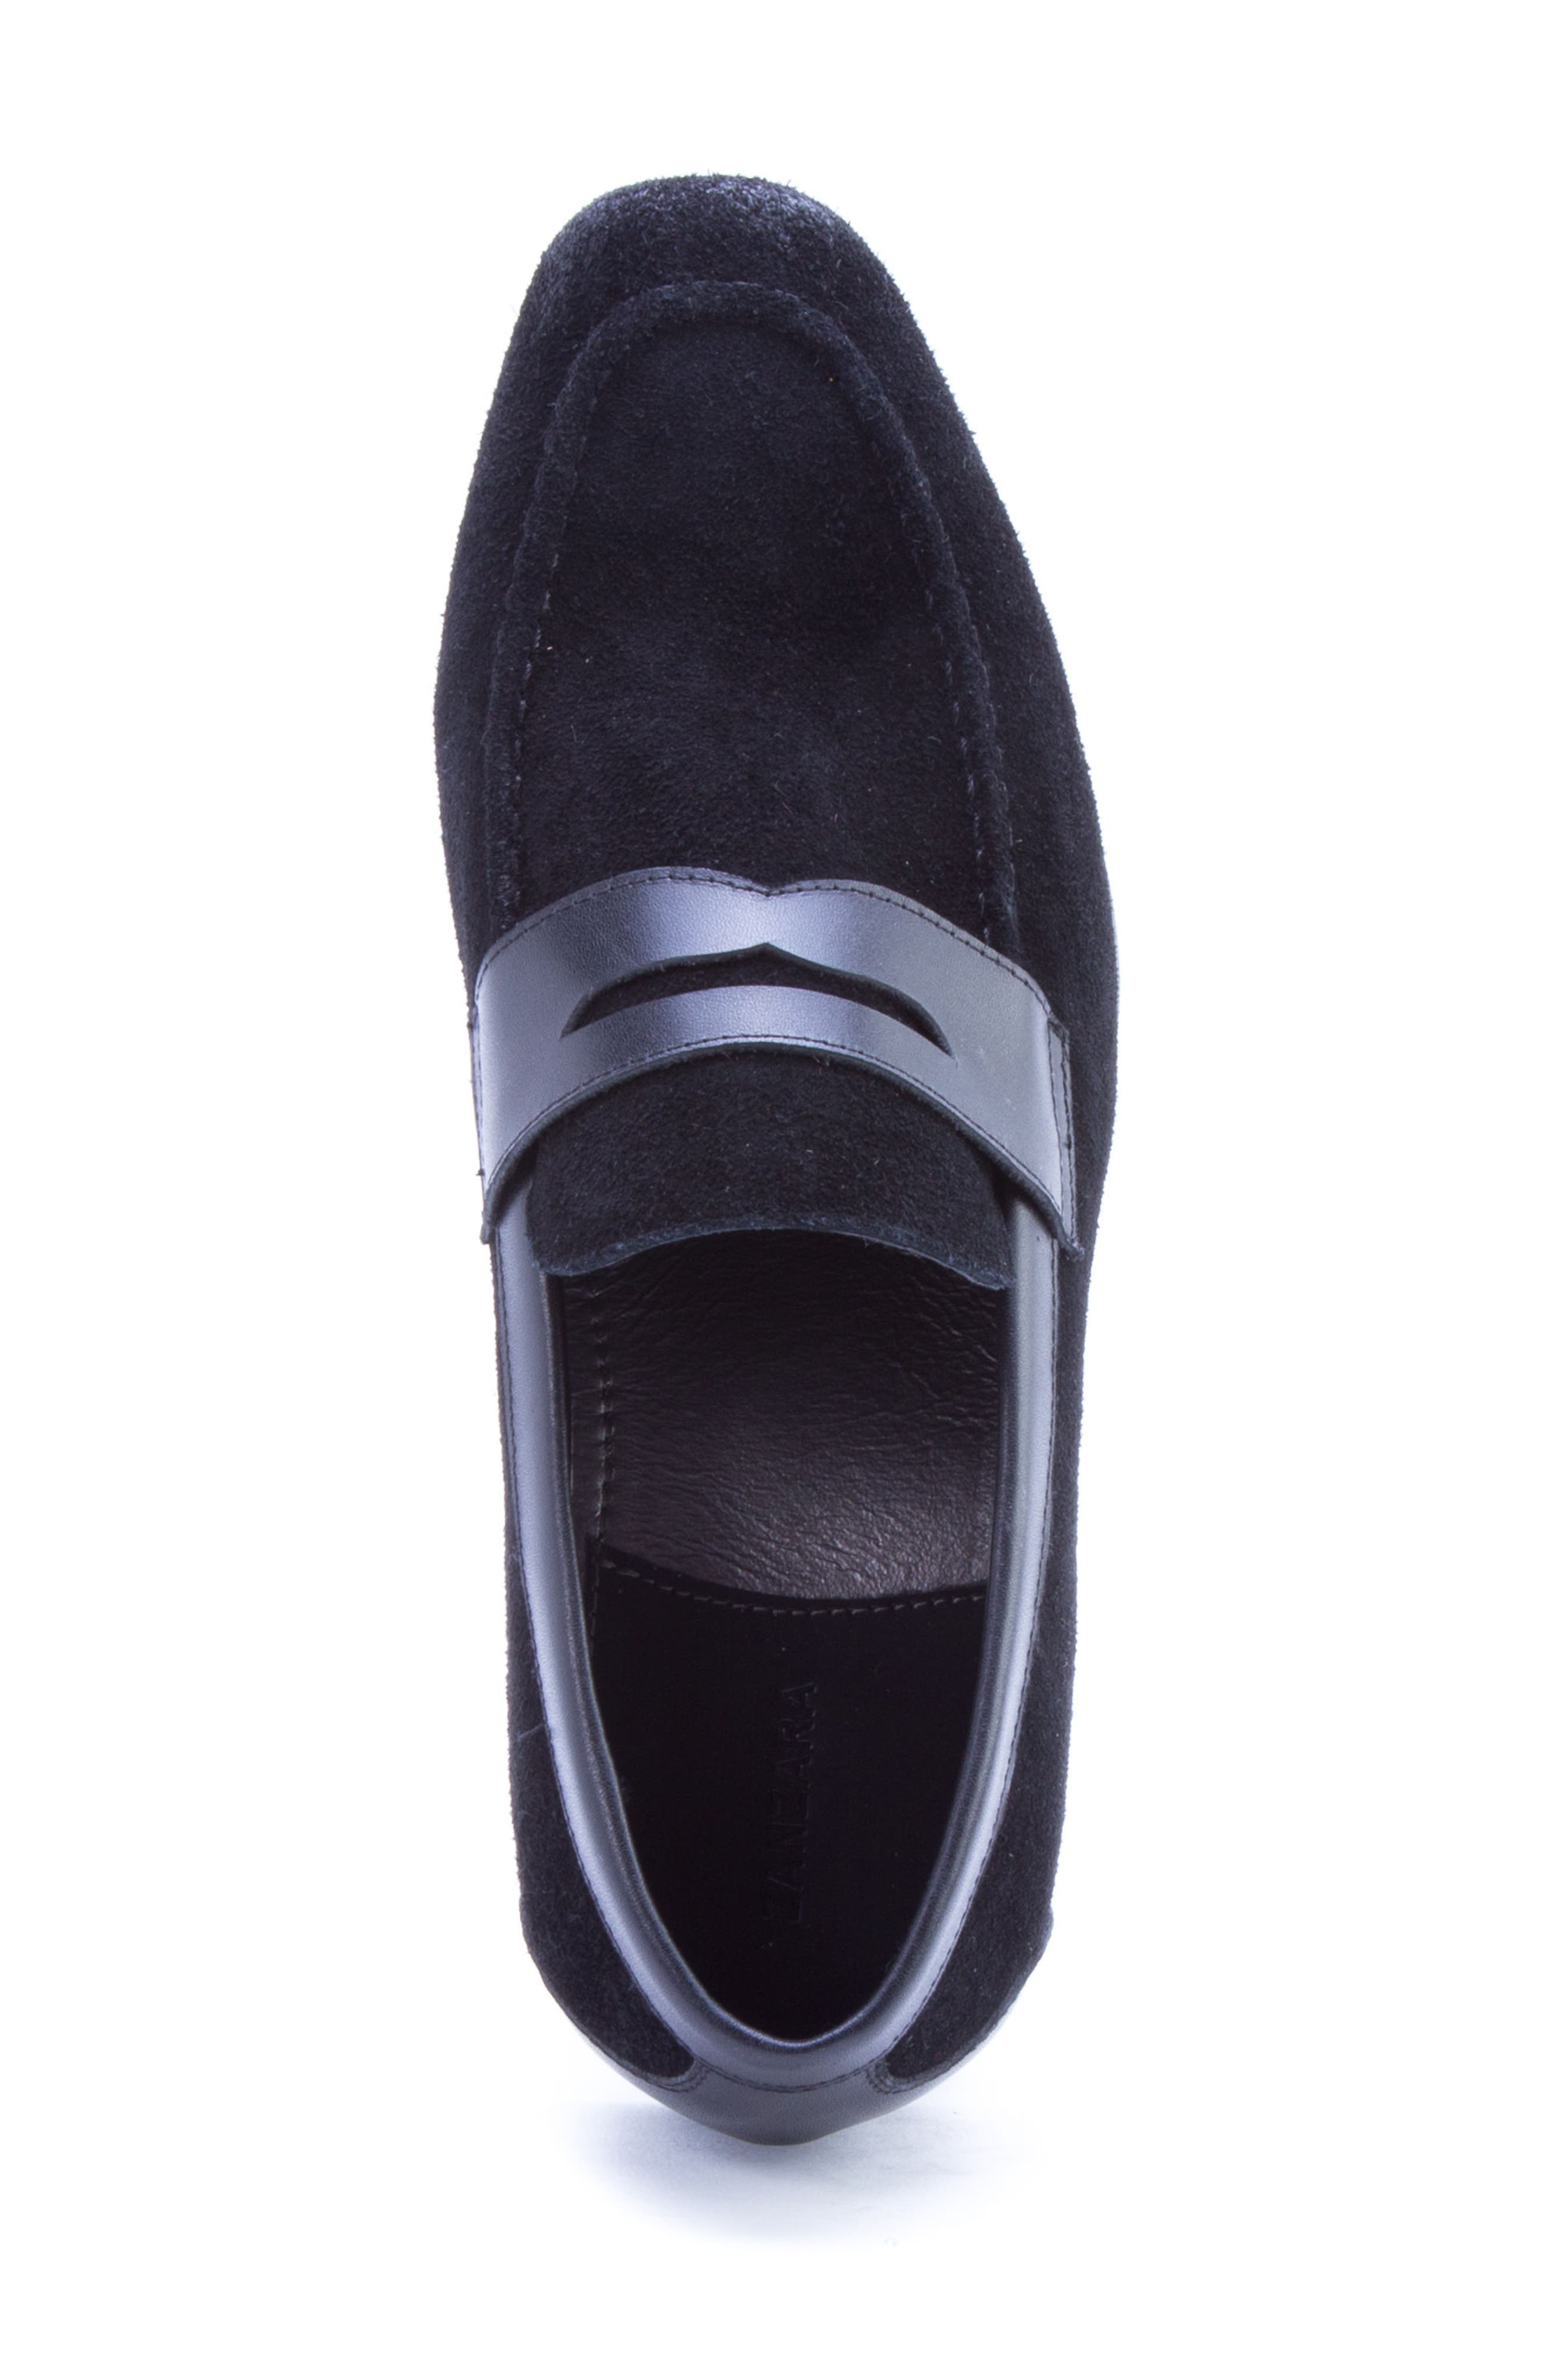 Siena Penny Loafer,                             Alternate thumbnail 5, color,                             Black Suede/ Leather